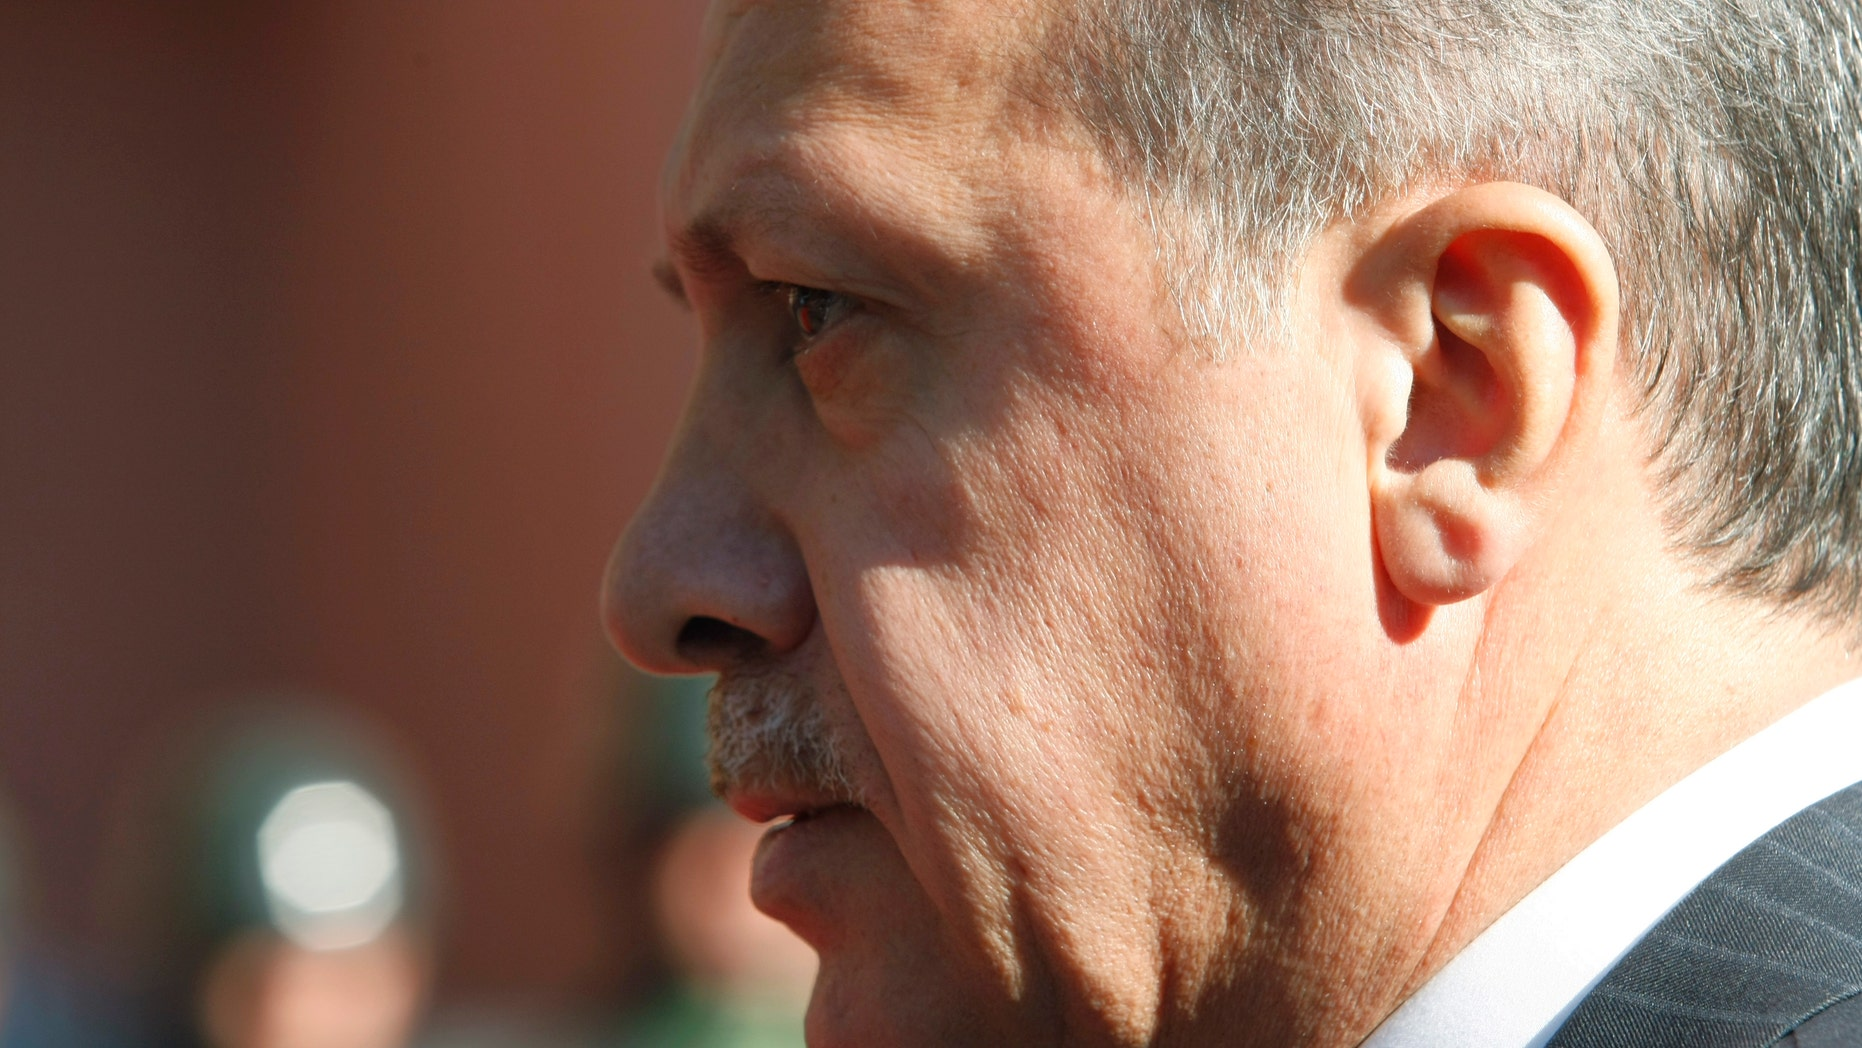 """September 8: Turkish  Prime Minister Recep Tayyip Erdogan walks before a ceremony outside his office in Ankara, Turkey. Erdogan said on the eve of a visit to Egypt that Israel's raid on a Gaza-bound aid flotilla last year was """"cause for war"""" but that his country had shown """"patience"""" and refrained from taking any action."""